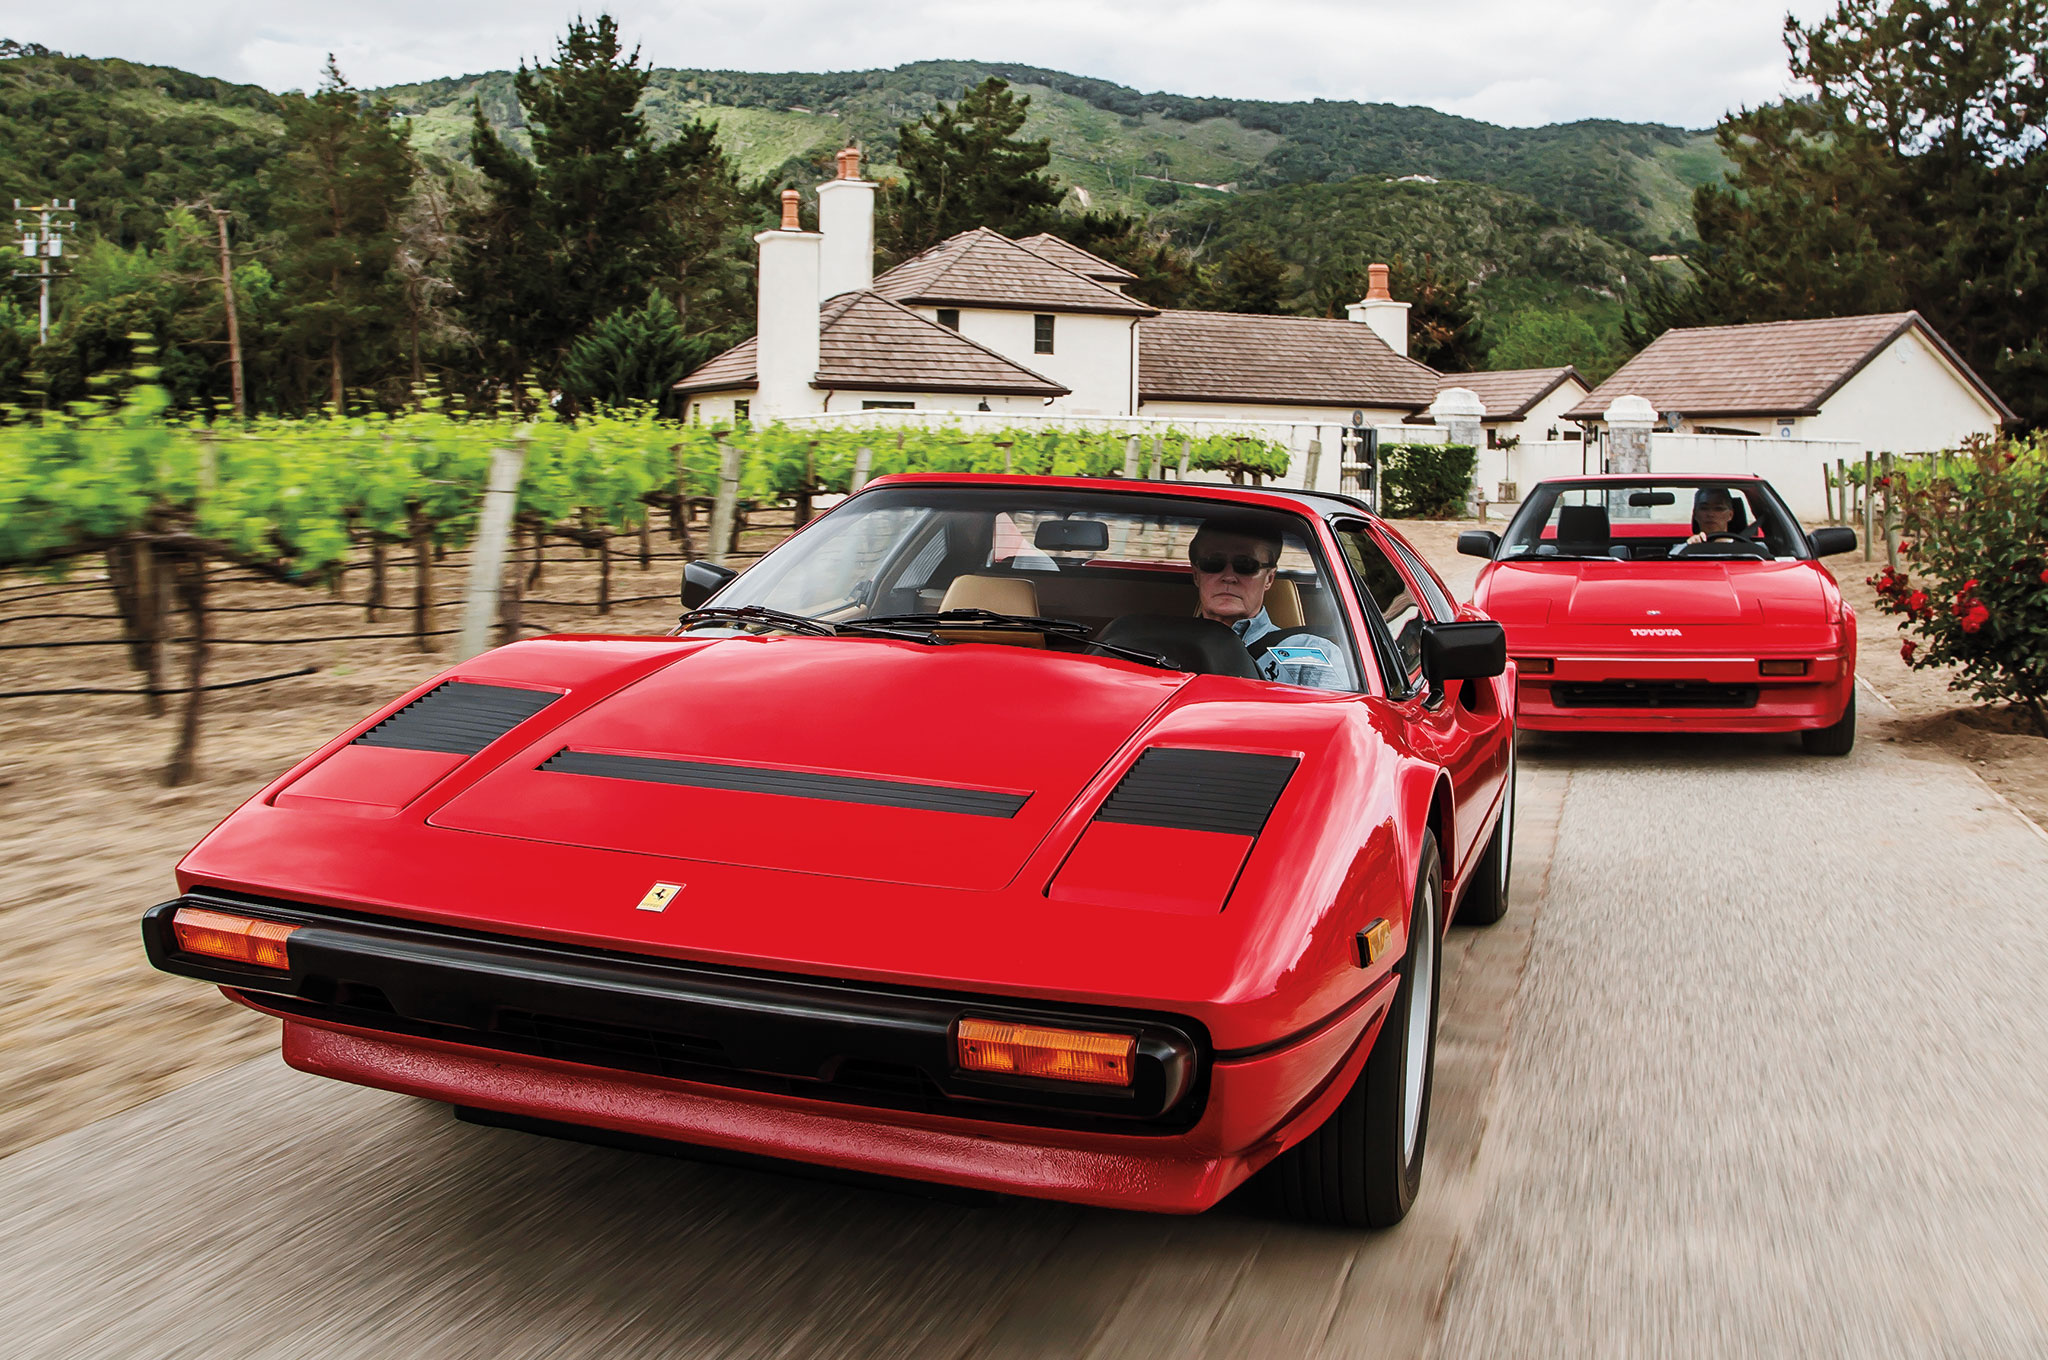 Ferrari Vs Toyota >> When Magnum P I Met Mister Two Ferrari 308 Vs Toyota Mr2